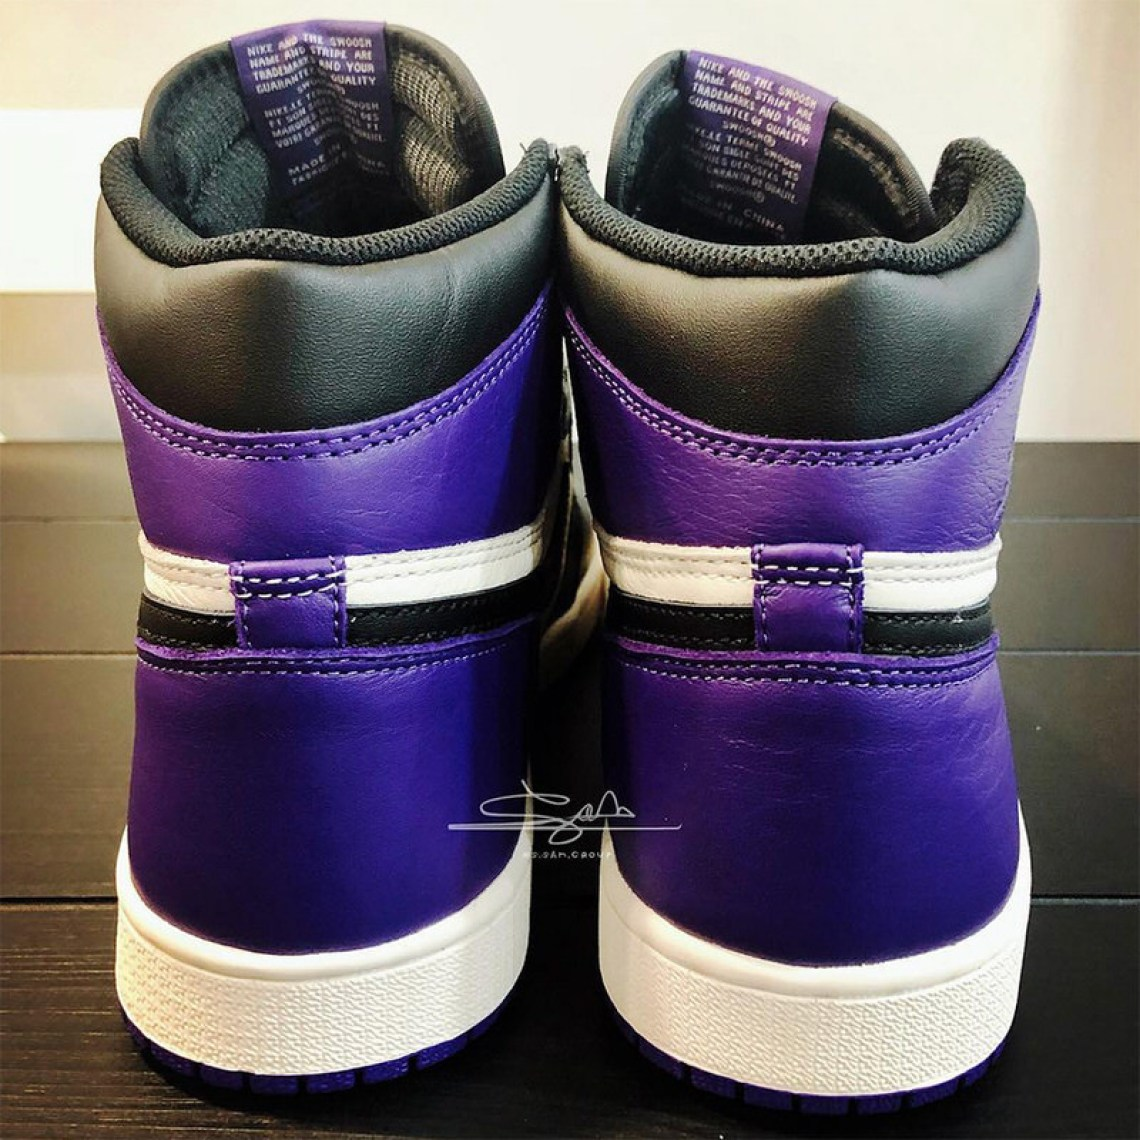 "64575474aa62b6 The Air Jordan 1 Retro High OG ""Court Purple"" is rumored to drop in  September. Stay tuned for the official release details."